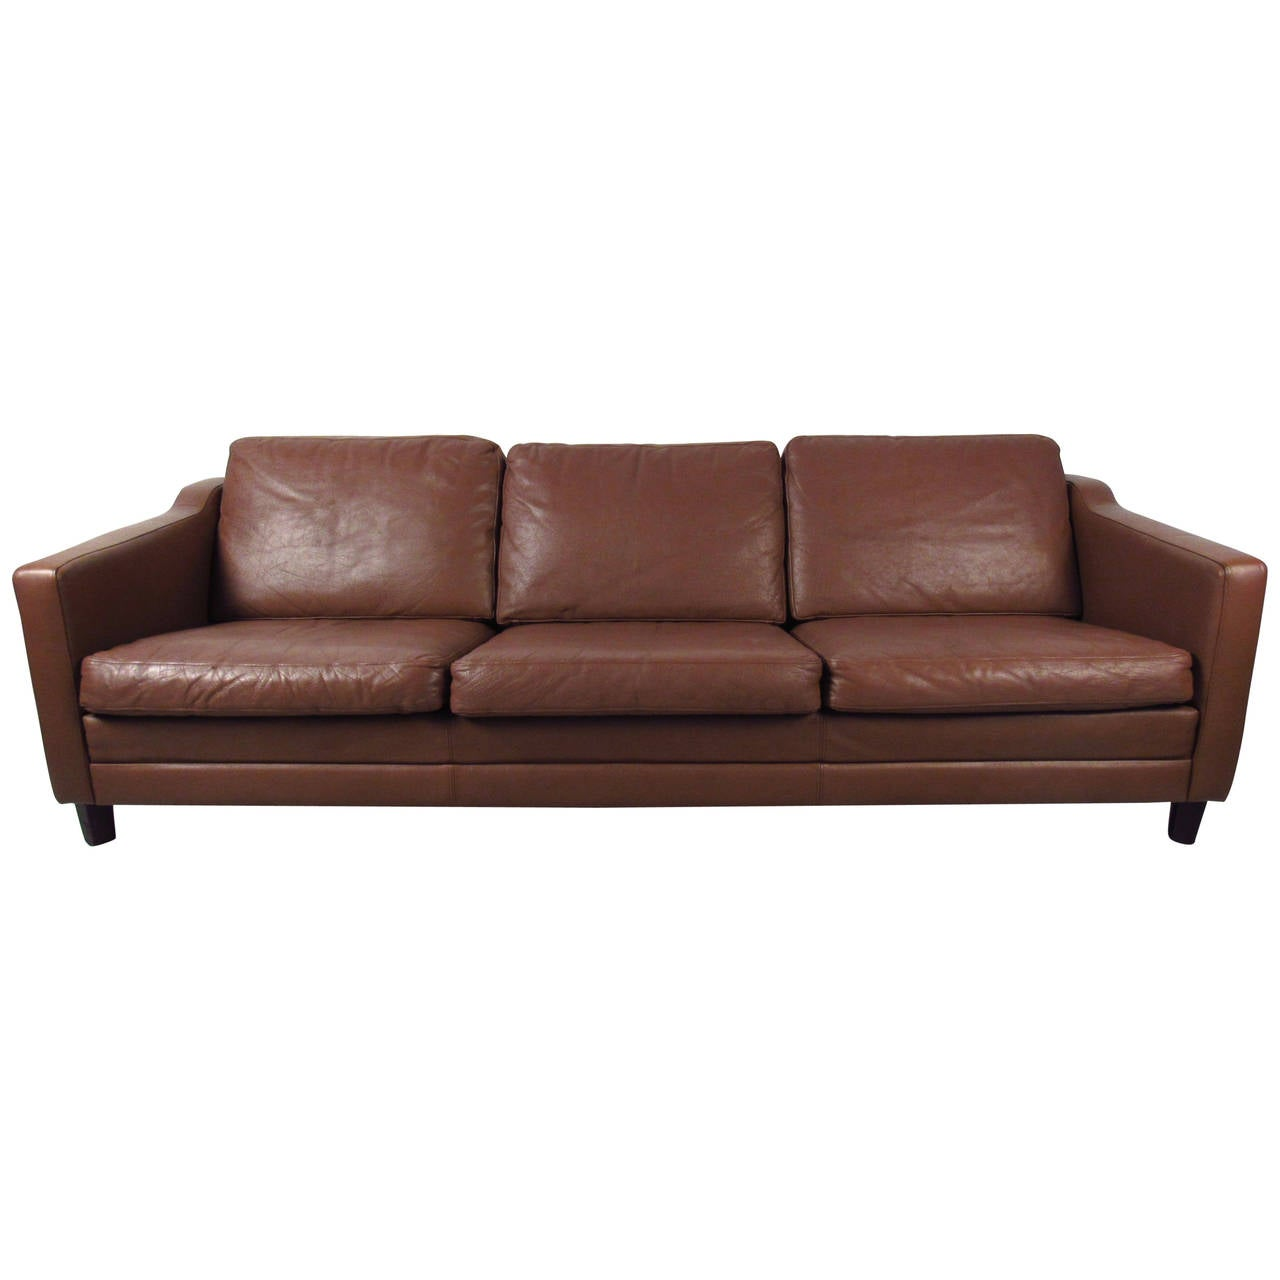 mid century modern danish leather sofa in the style of. Black Bedroom Furniture Sets. Home Design Ideas